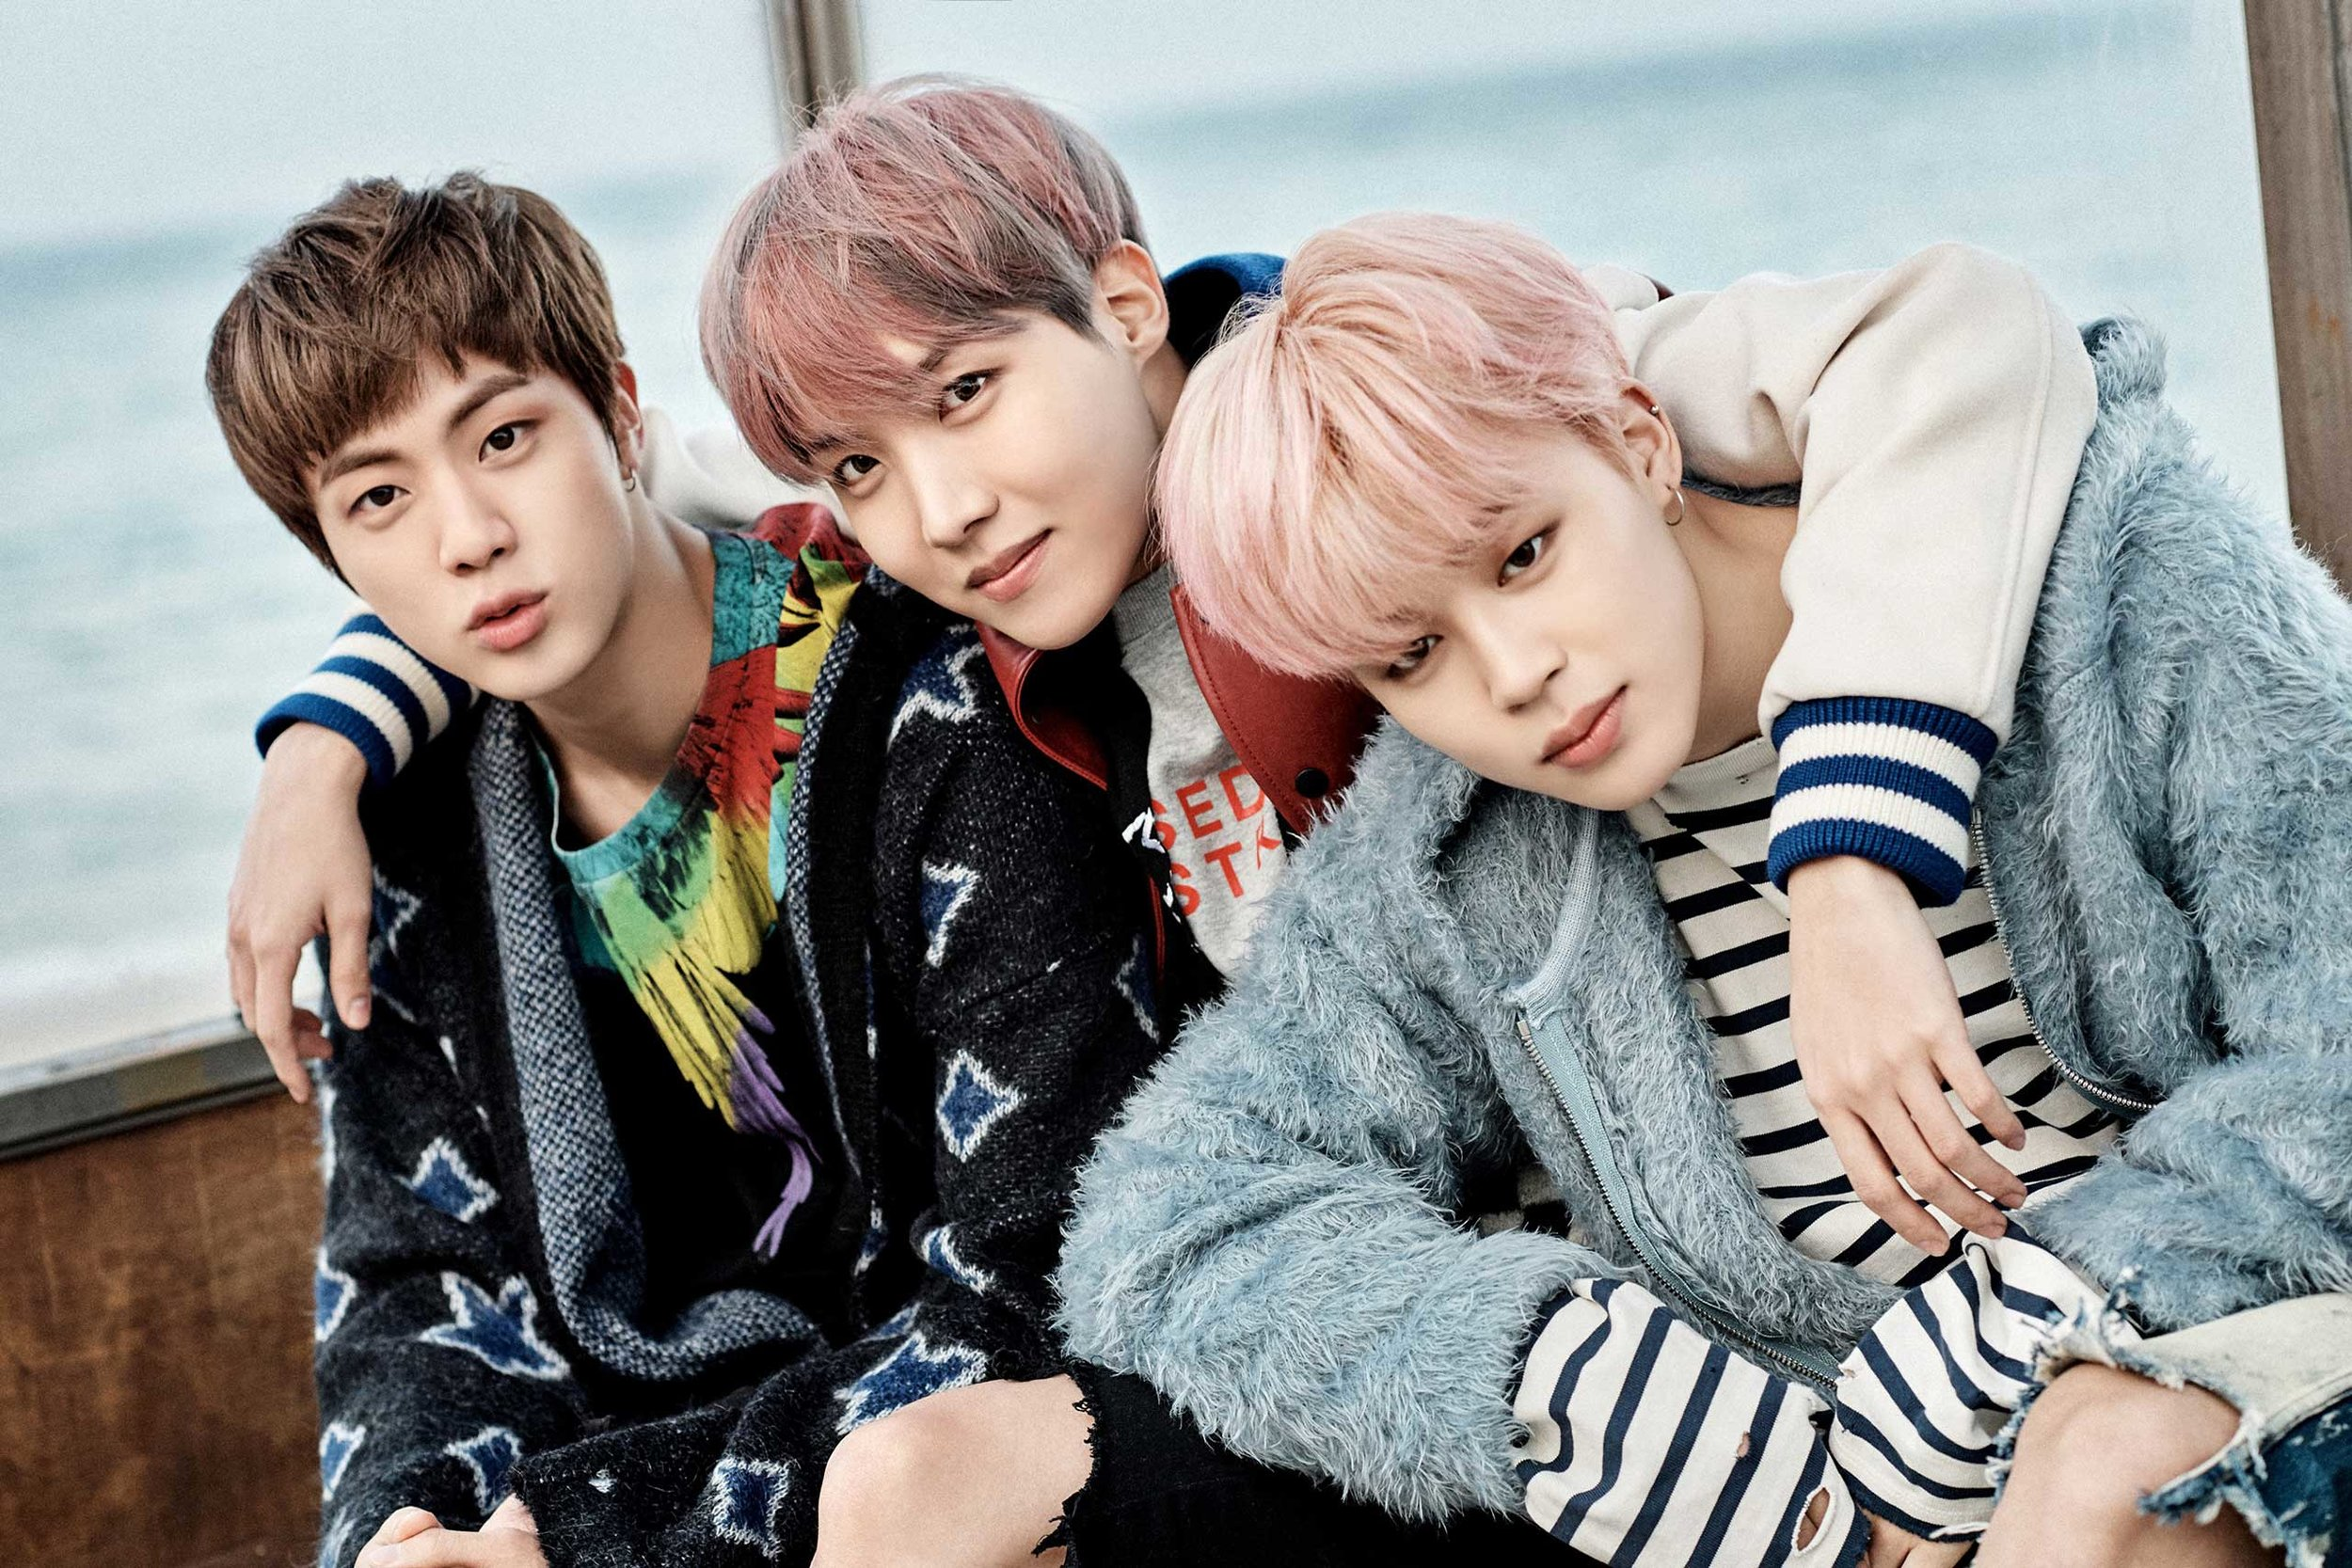 Members of BTS - A K-pop boy band